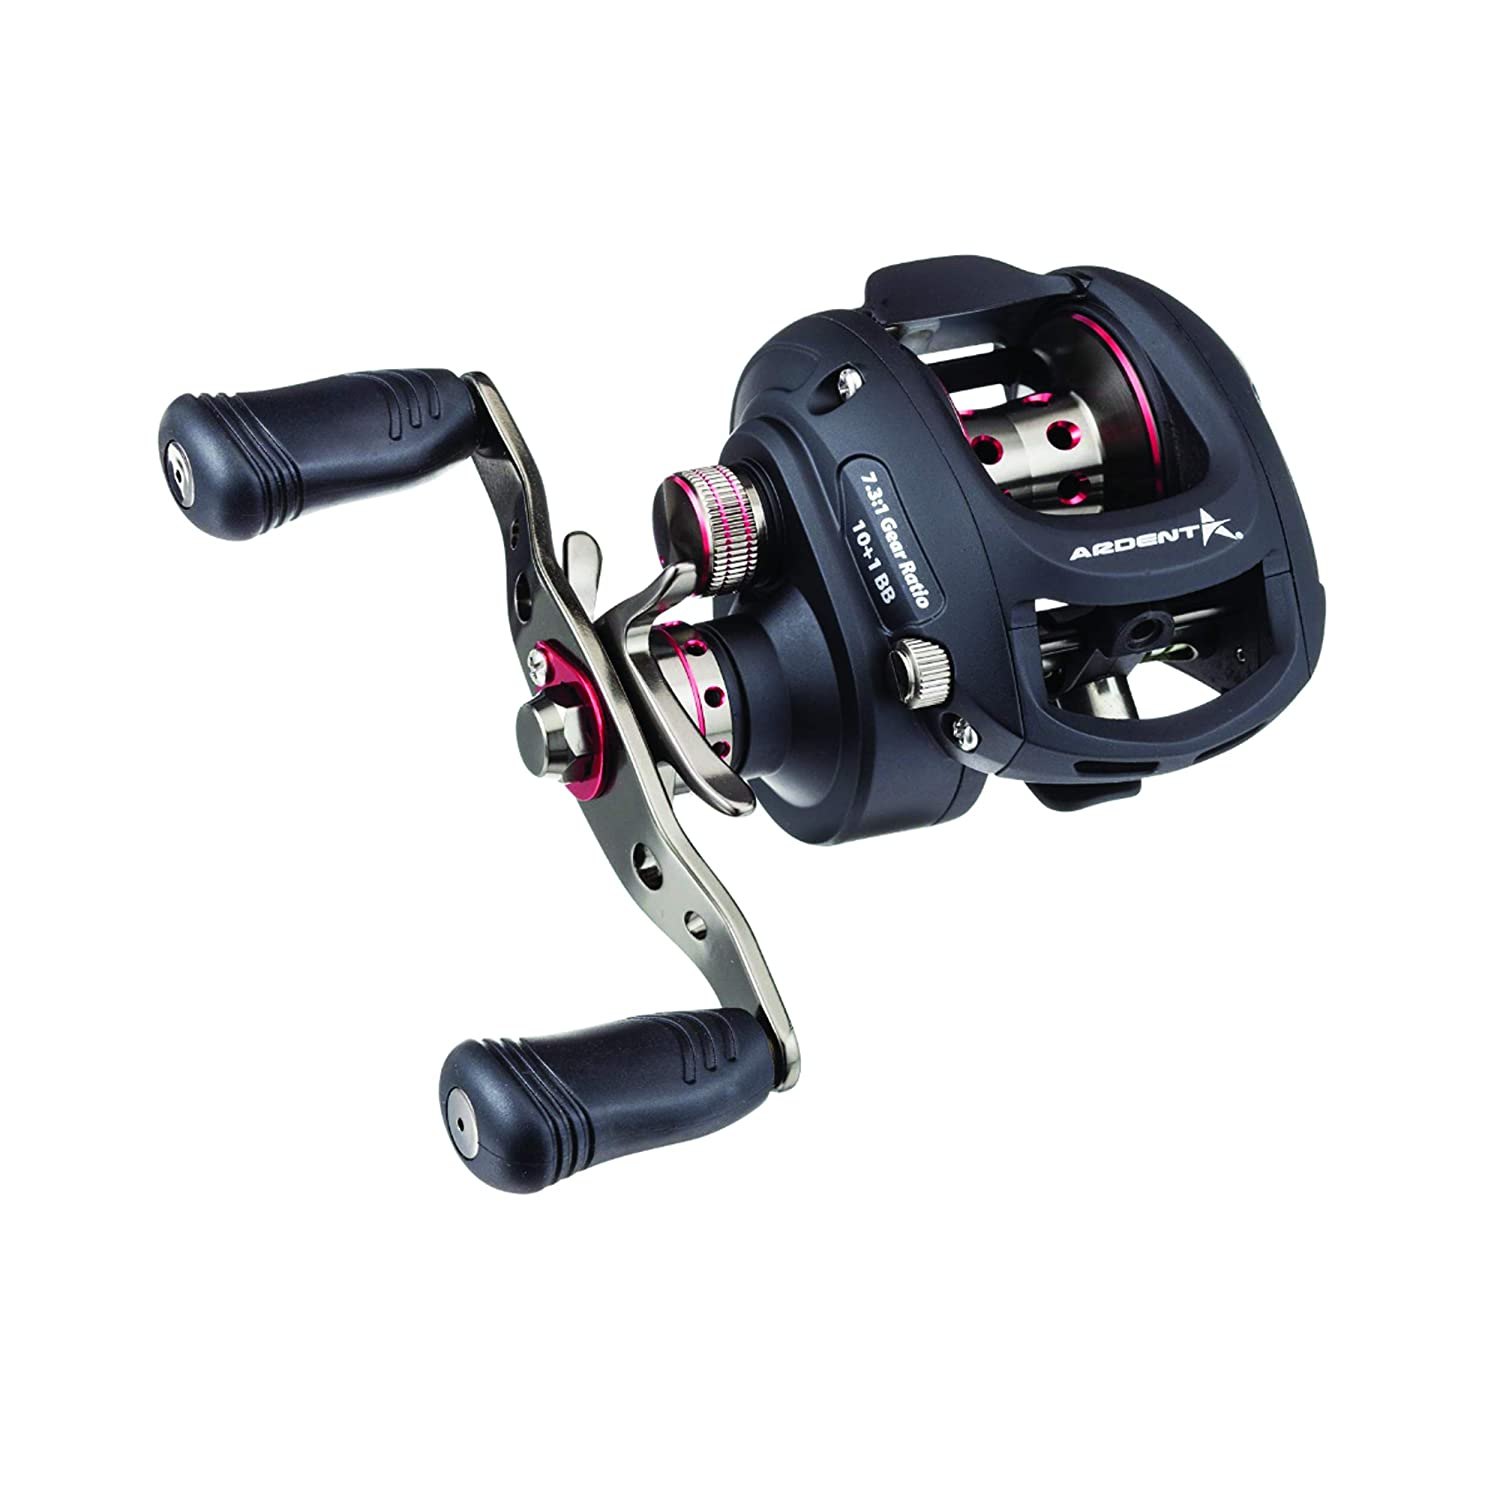 Ardent Apex Pro Baitcasting Reel, 7.3 1 Gear Ratio, 10 1 BB, Right Handed